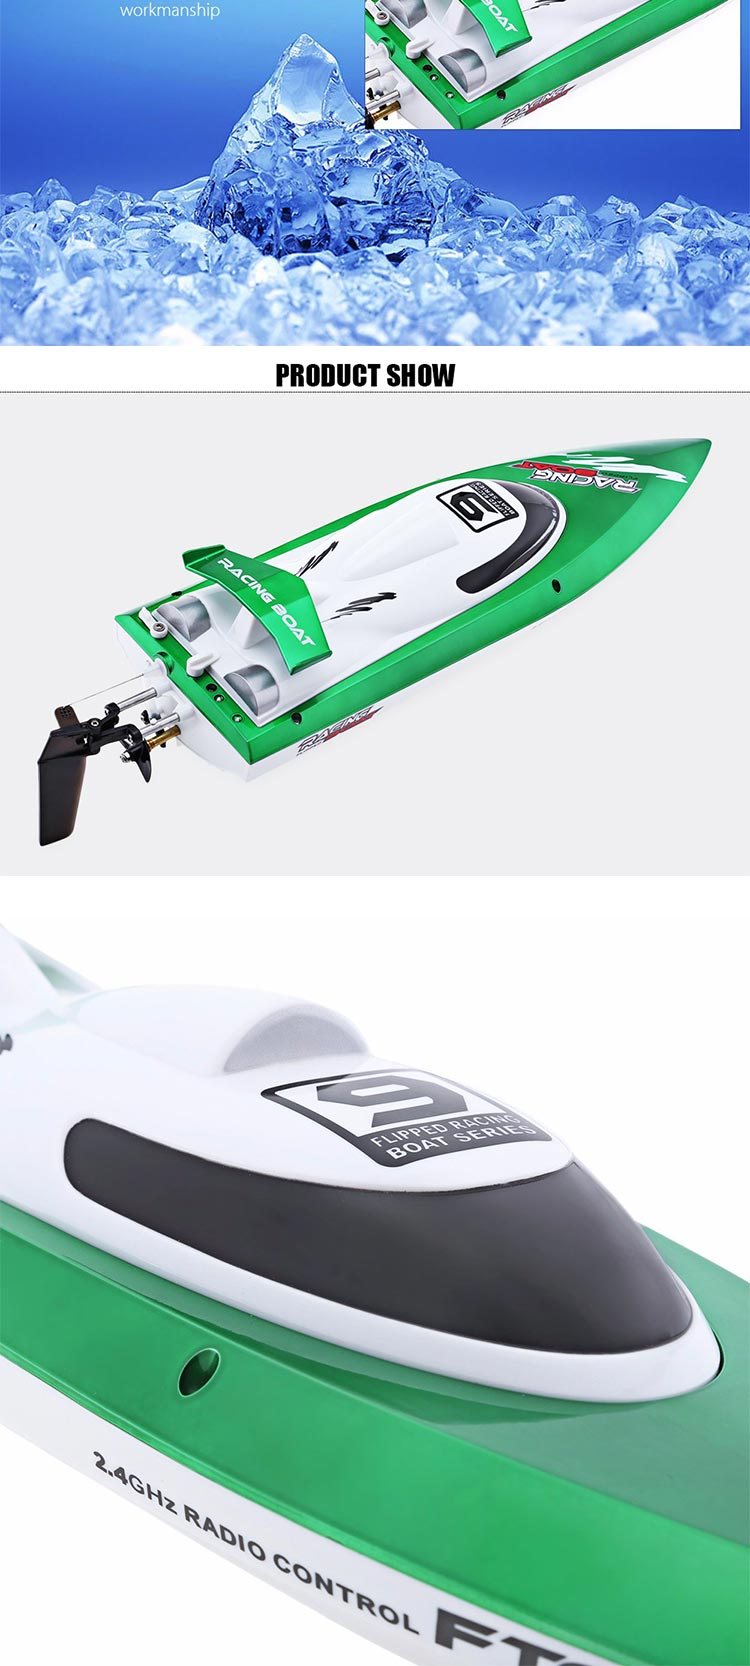 2.4GHz High Speed Remote Control Electric Speed Boat For Sale